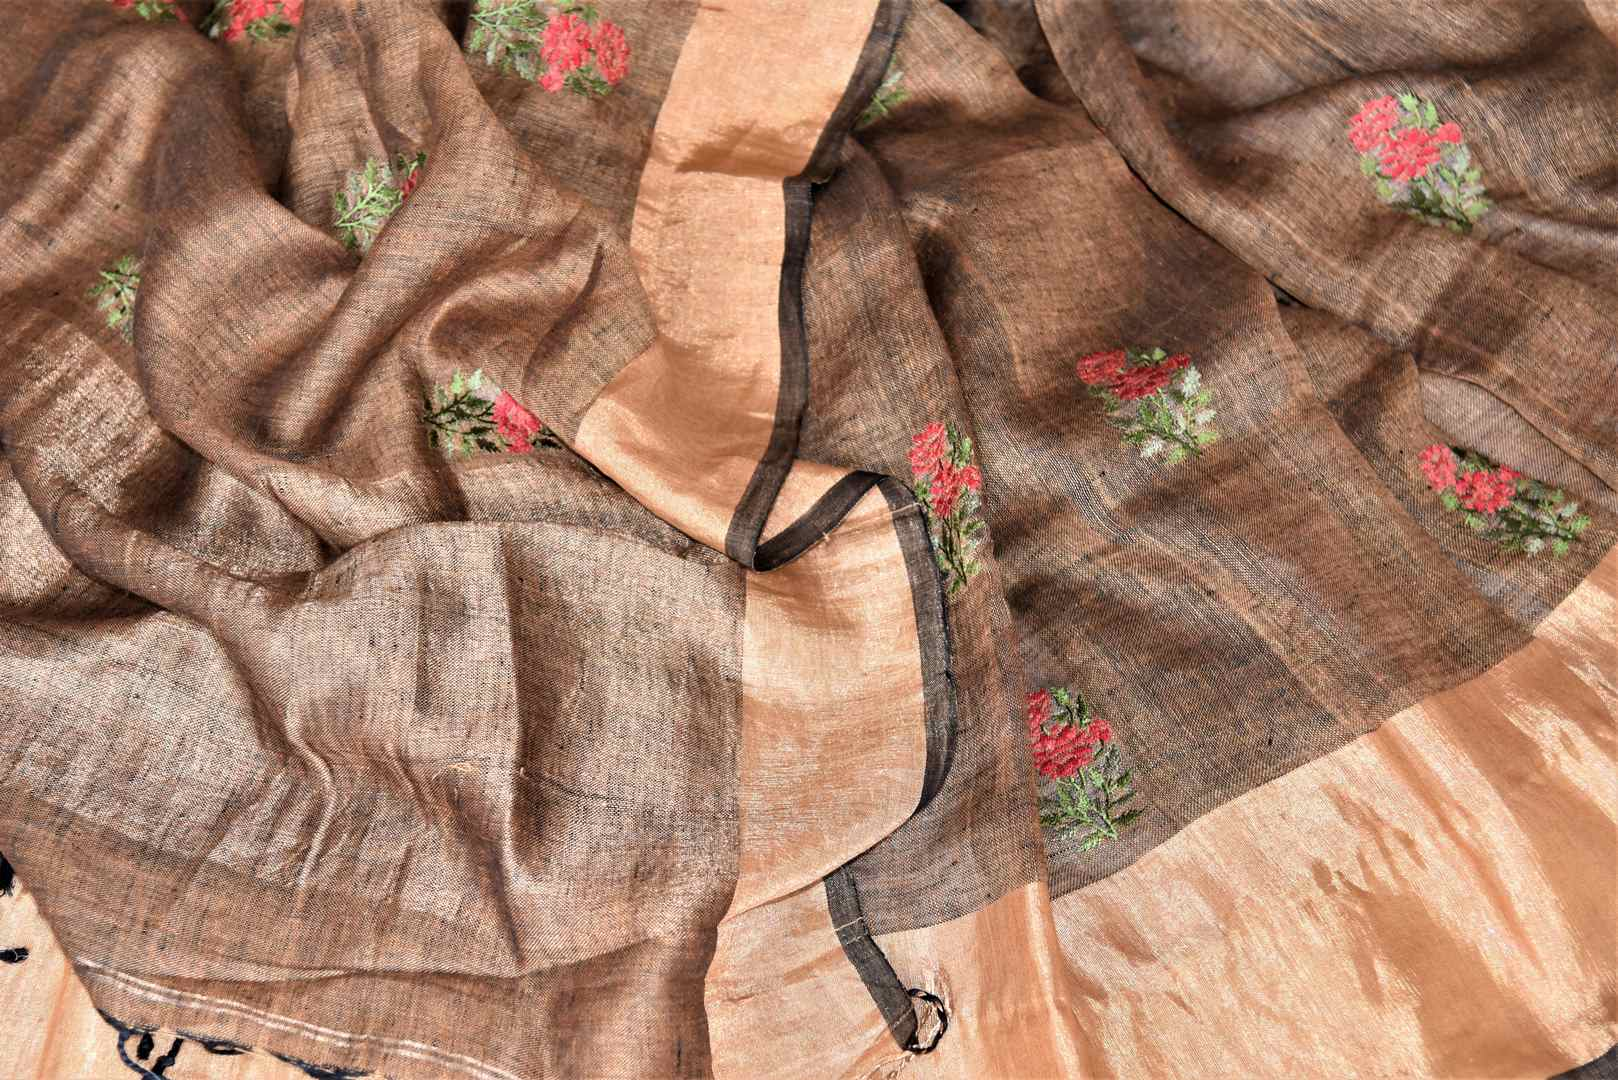 Buy gorgeous brown linen saree online in USA with embroidered floral motifs and zari border. Be the talk of the occasions in exquisite linen sarees, handwoven silk saris from Pure Elegance Indian fashion store in USA. -details